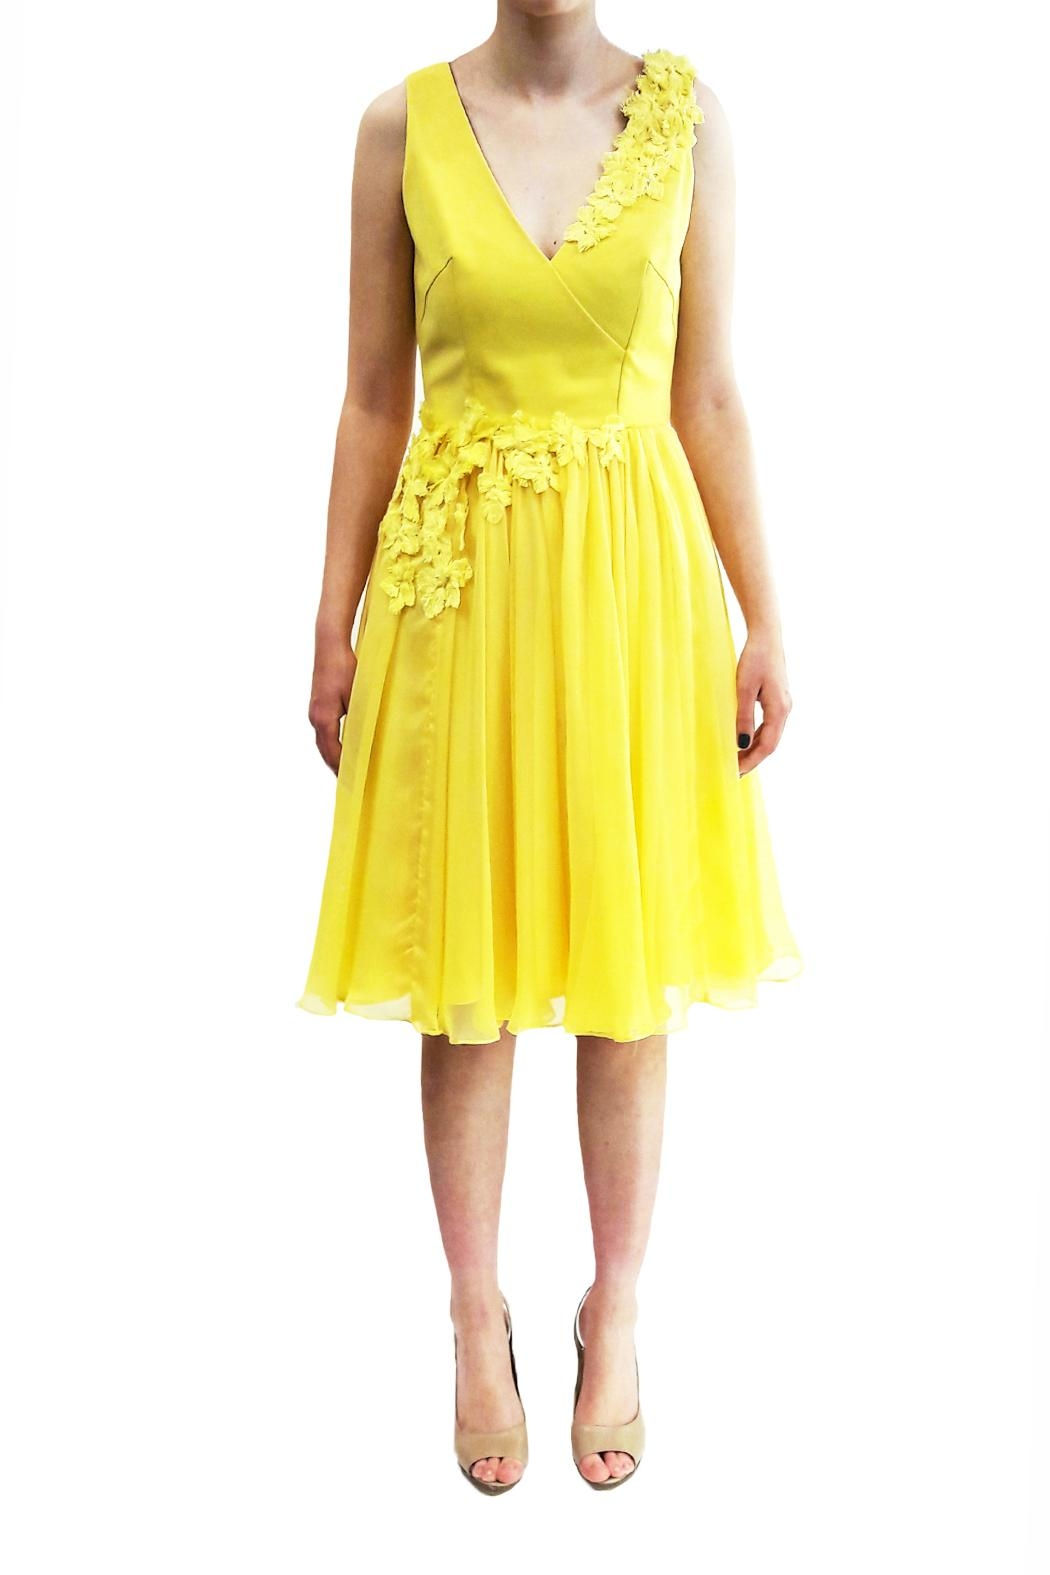 Isabel Garcia Sunny Flower Dress - Main Image